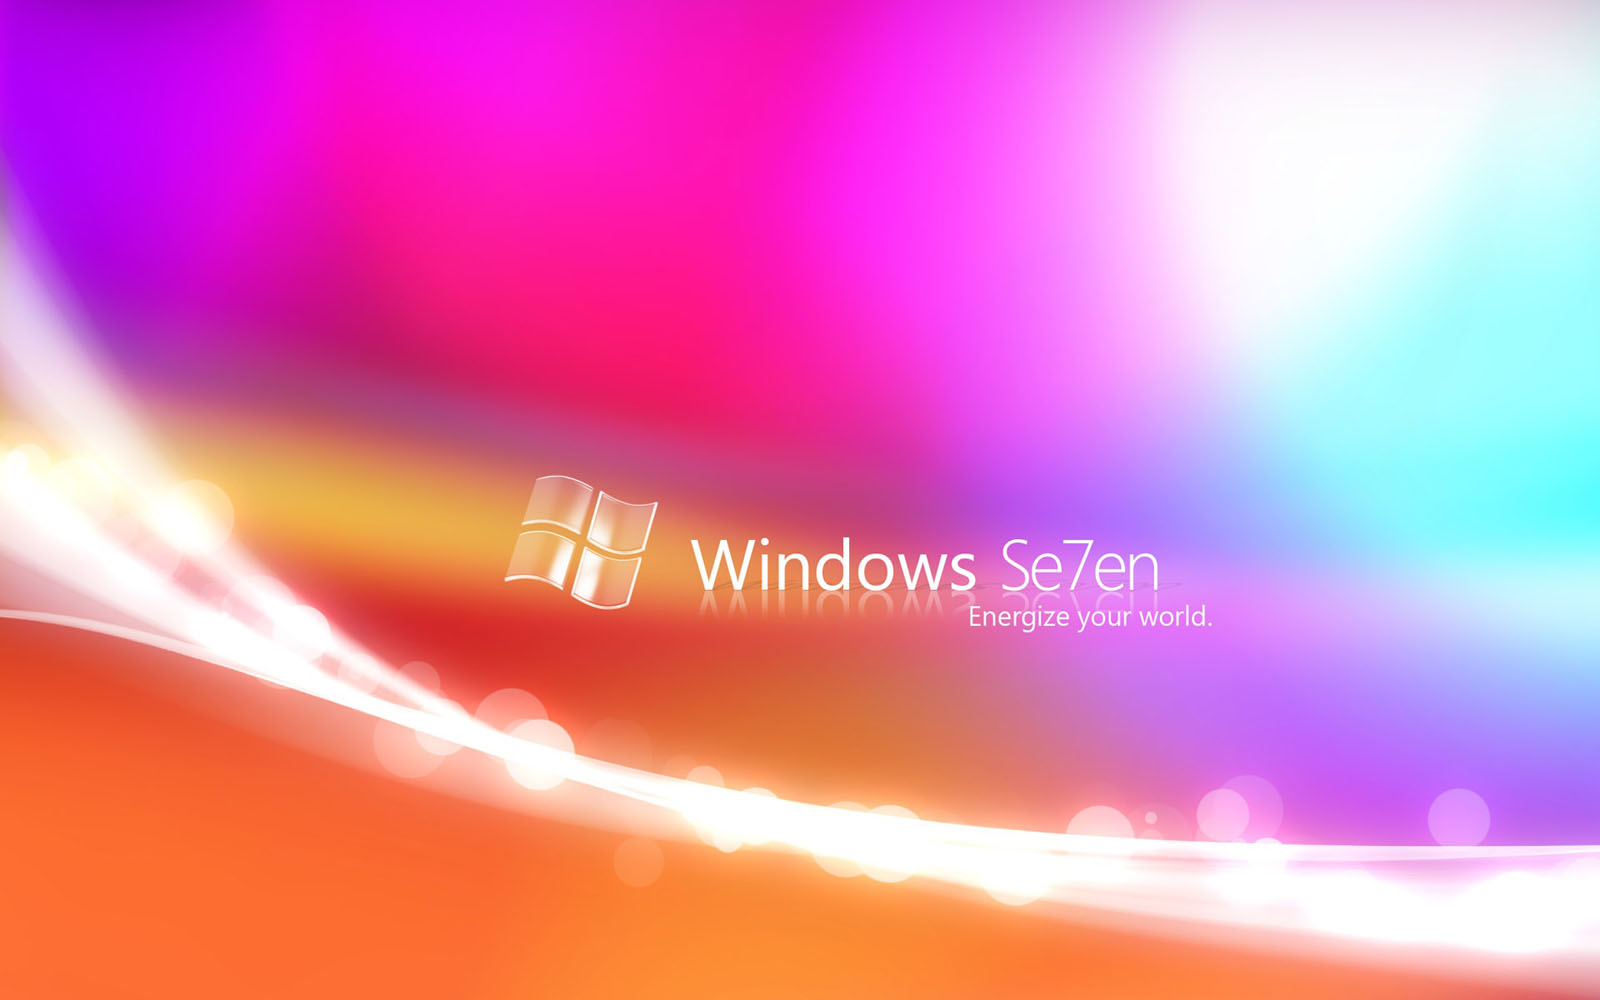 Wallpapers Windows 7 Bright Wallpapers